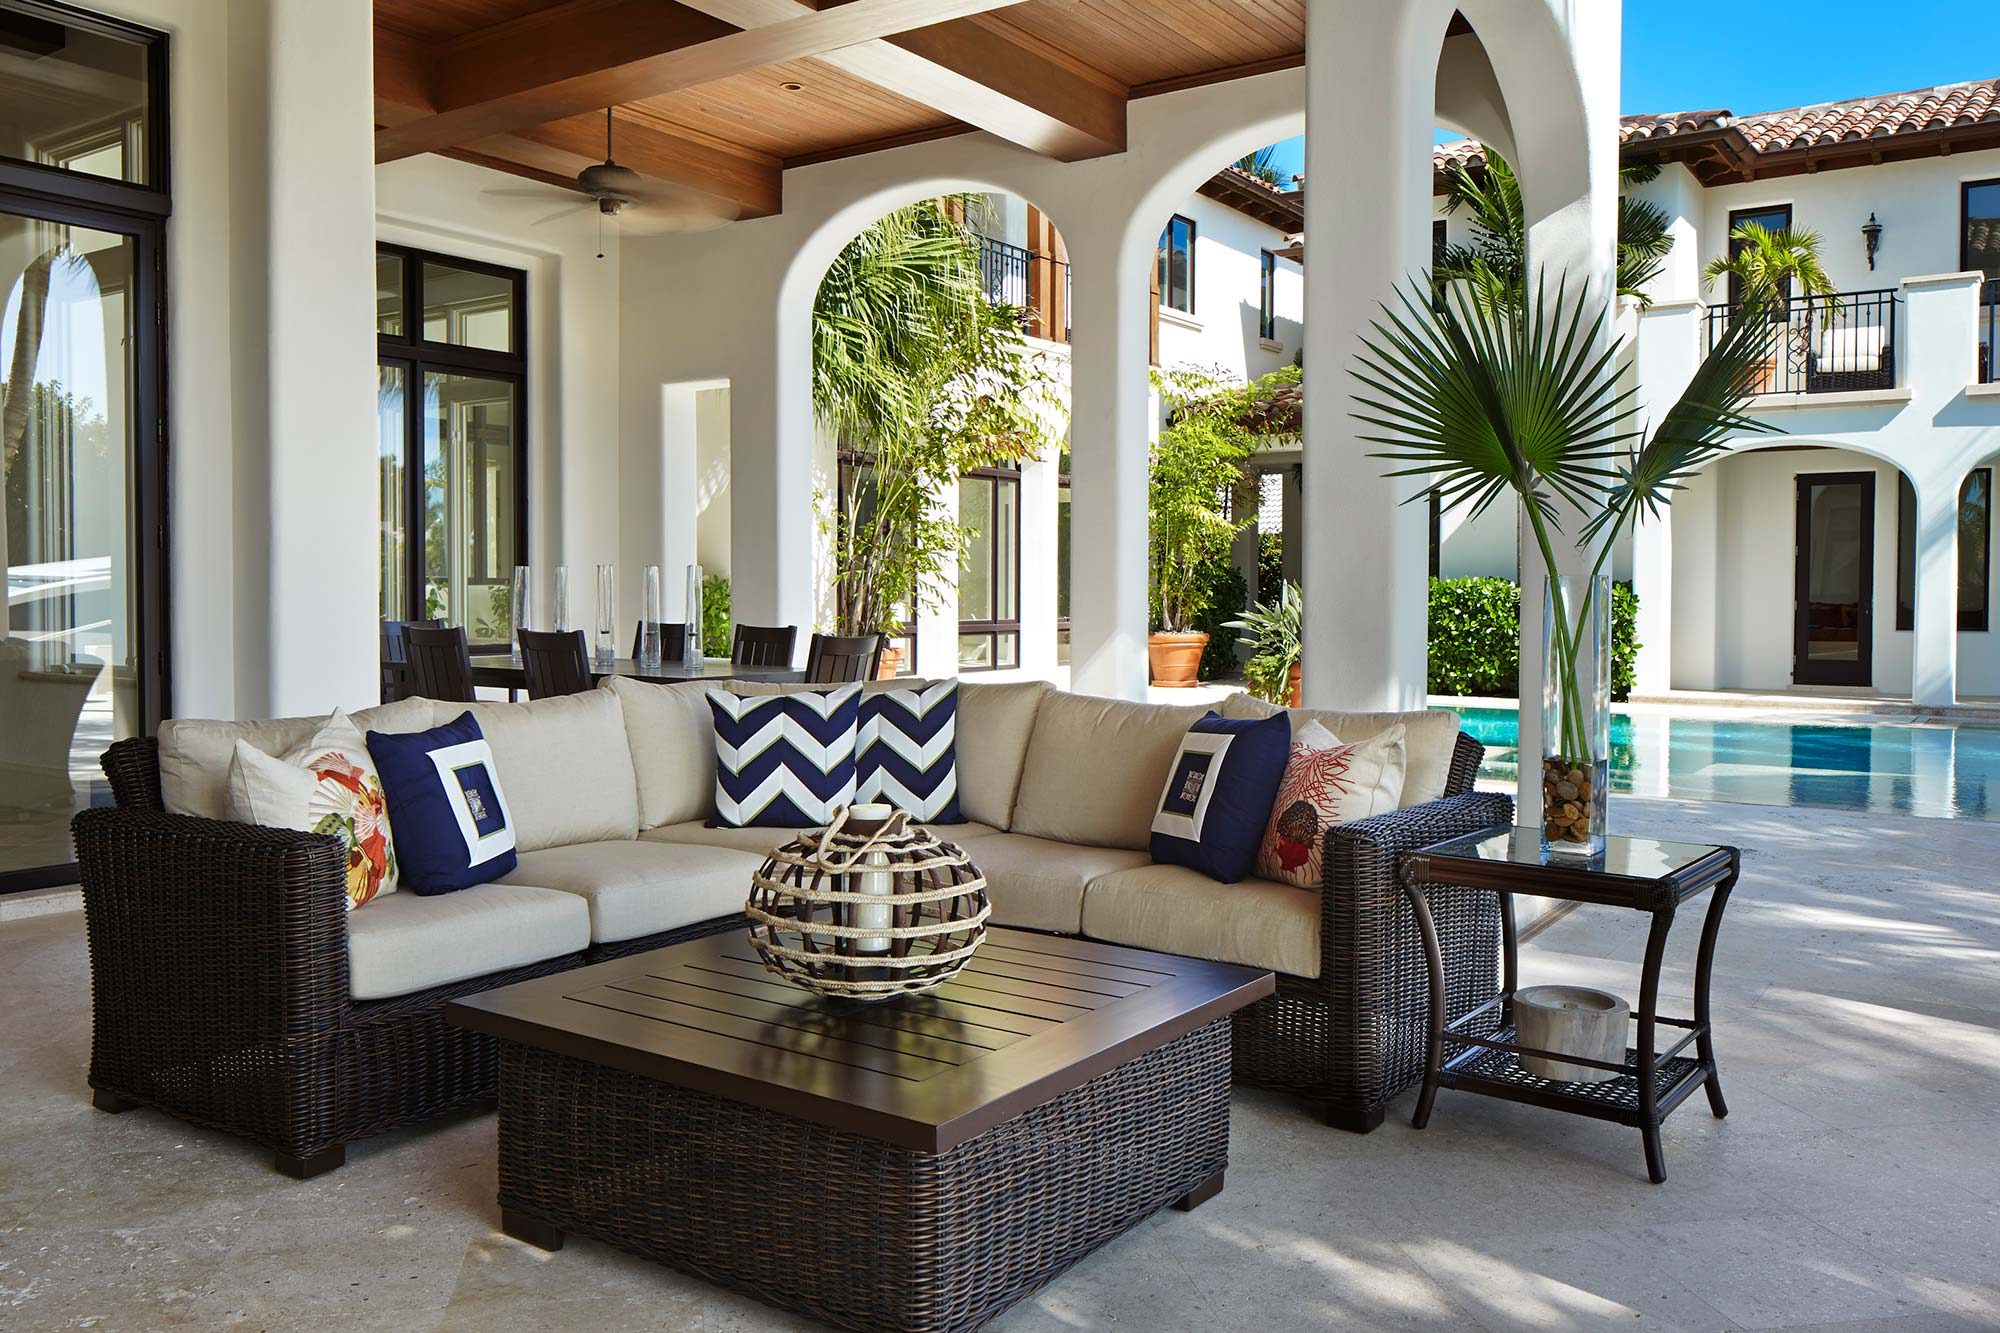 Annie Santulli Designs Ft. Lauderdale Estate